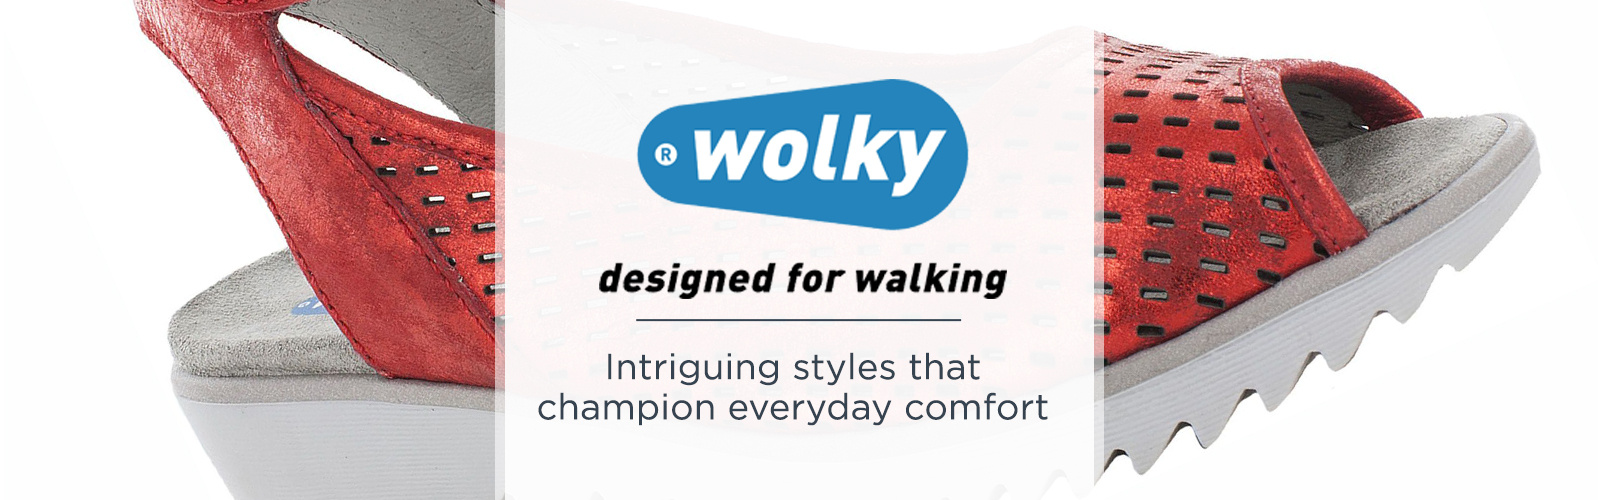 Wolky — Intriguing styles that champion everyday comfort